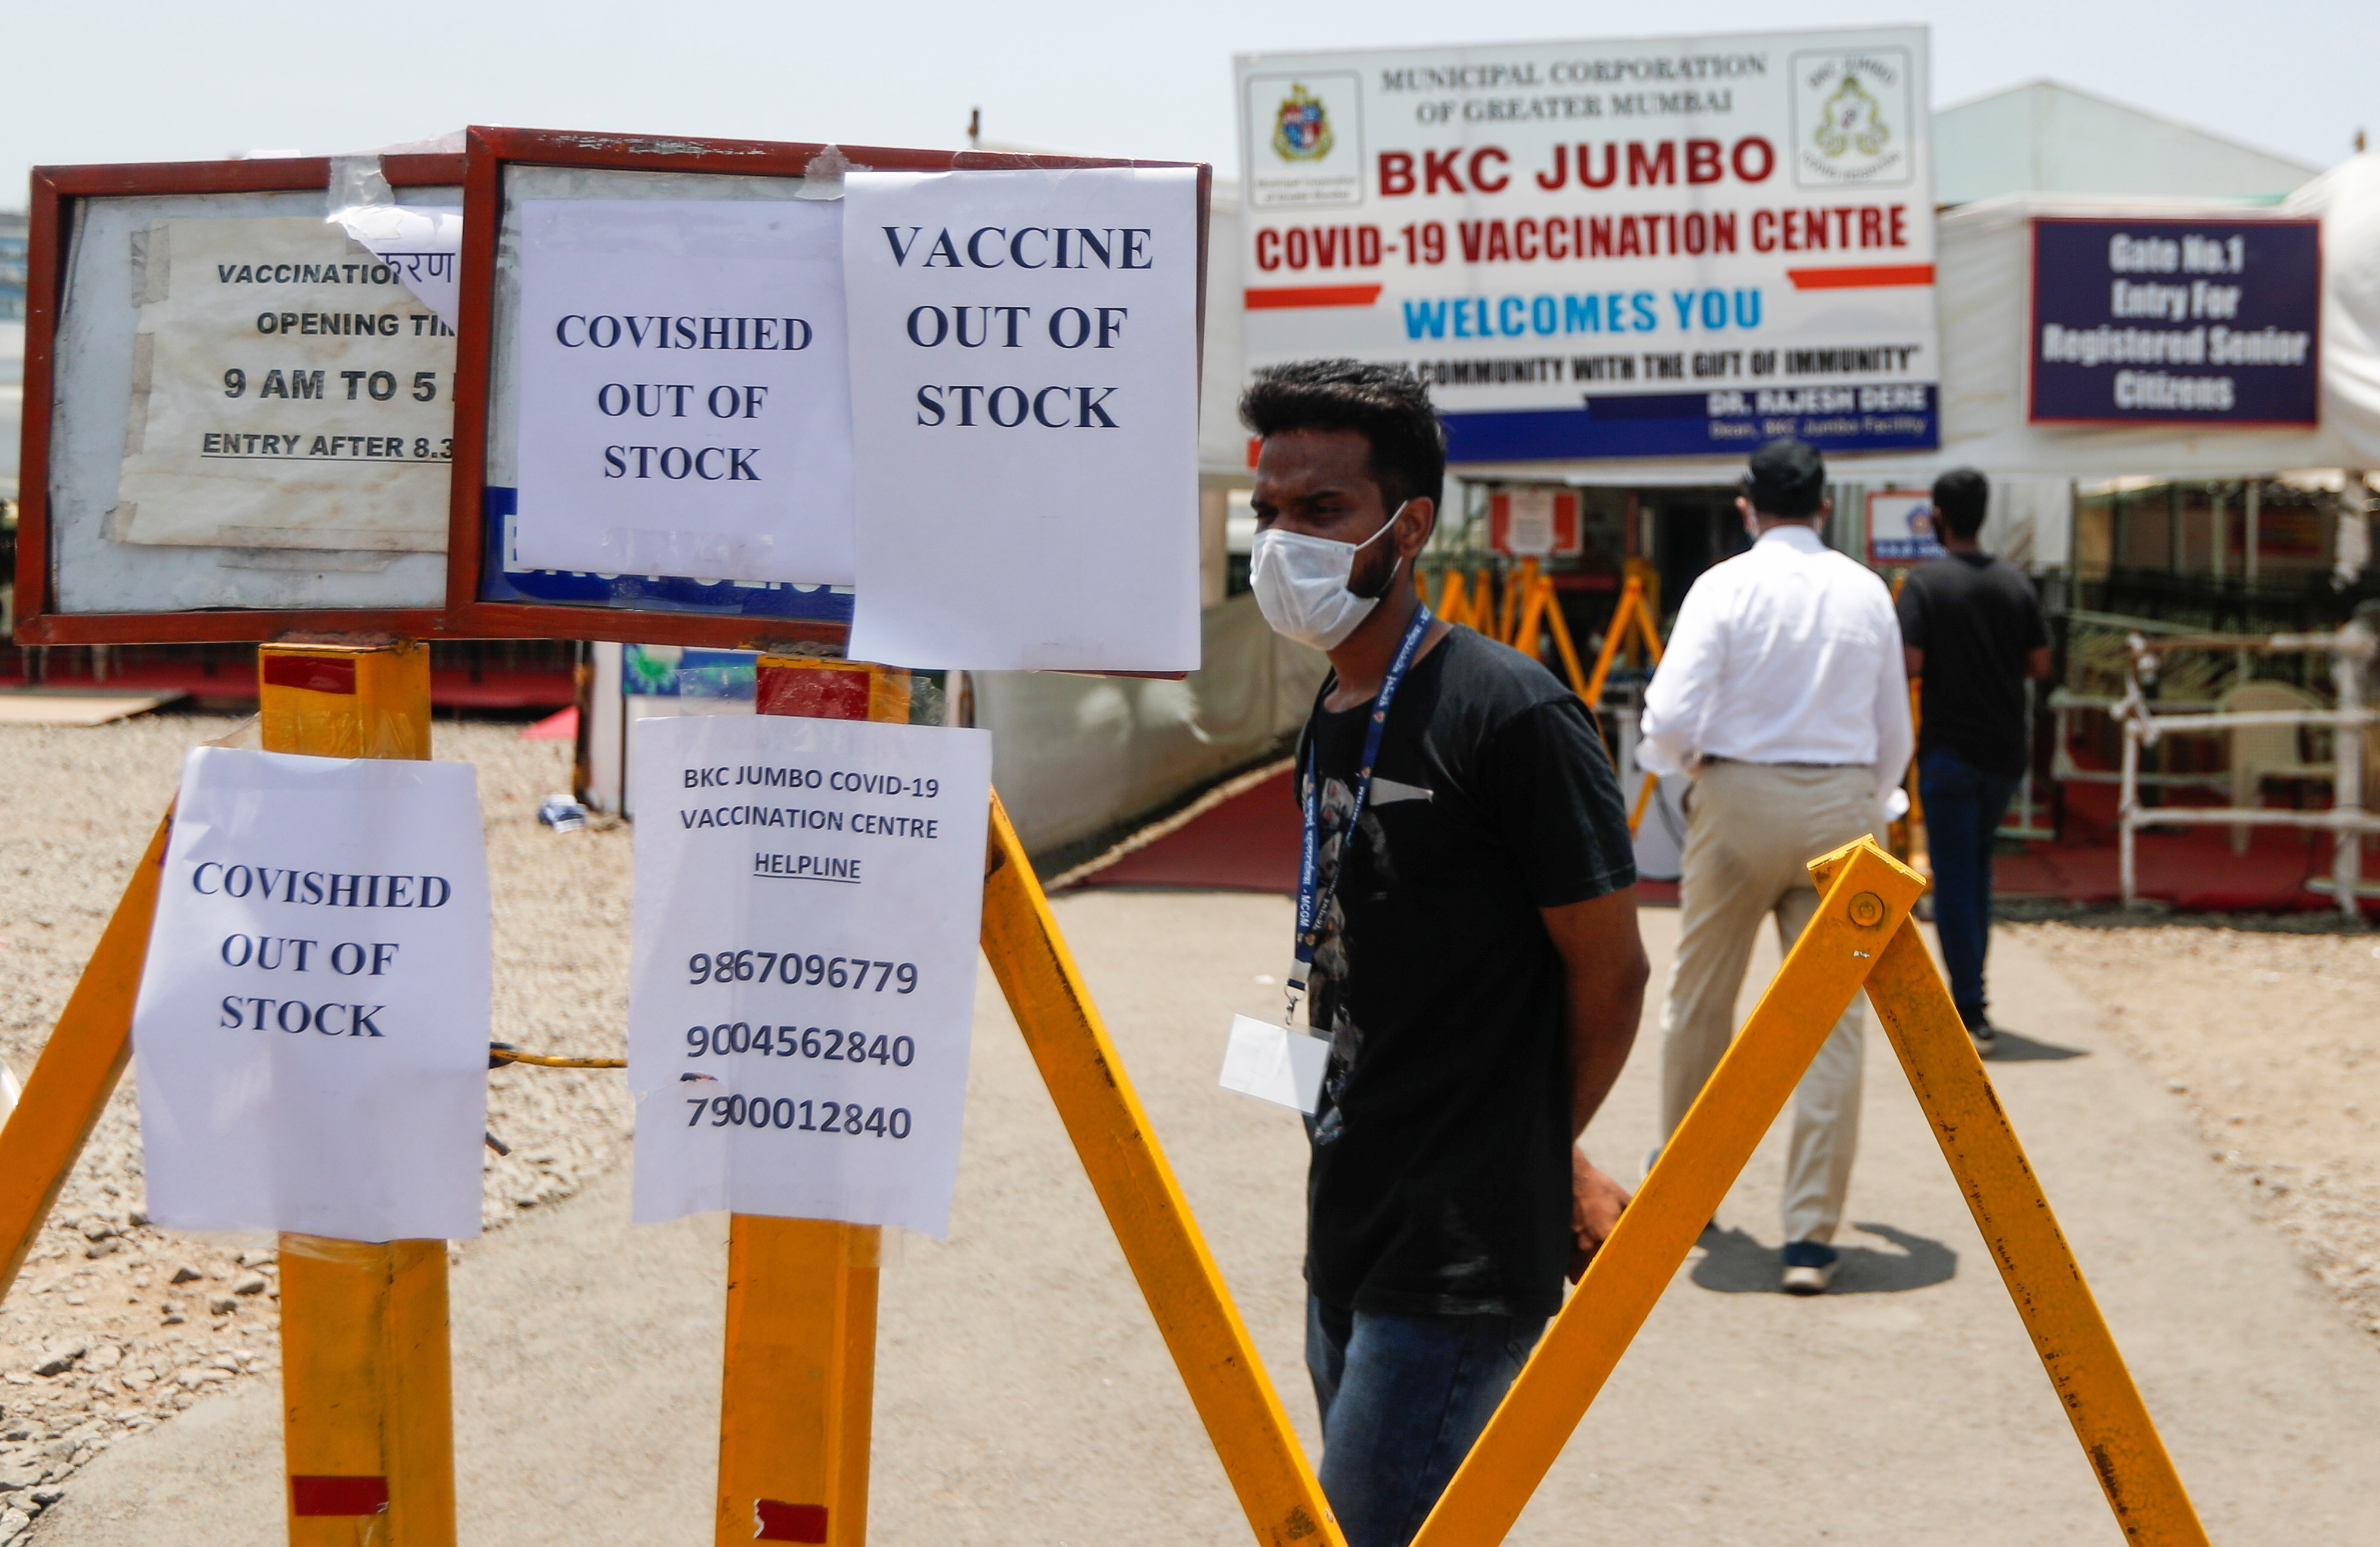 Notices about the shortage of COVISHIELD, a coronavirus disease (COVID-19) vaccine manufactured by Serum Institute of India, are seen outside a COVID-19 vaccination centre in Mumbai, India